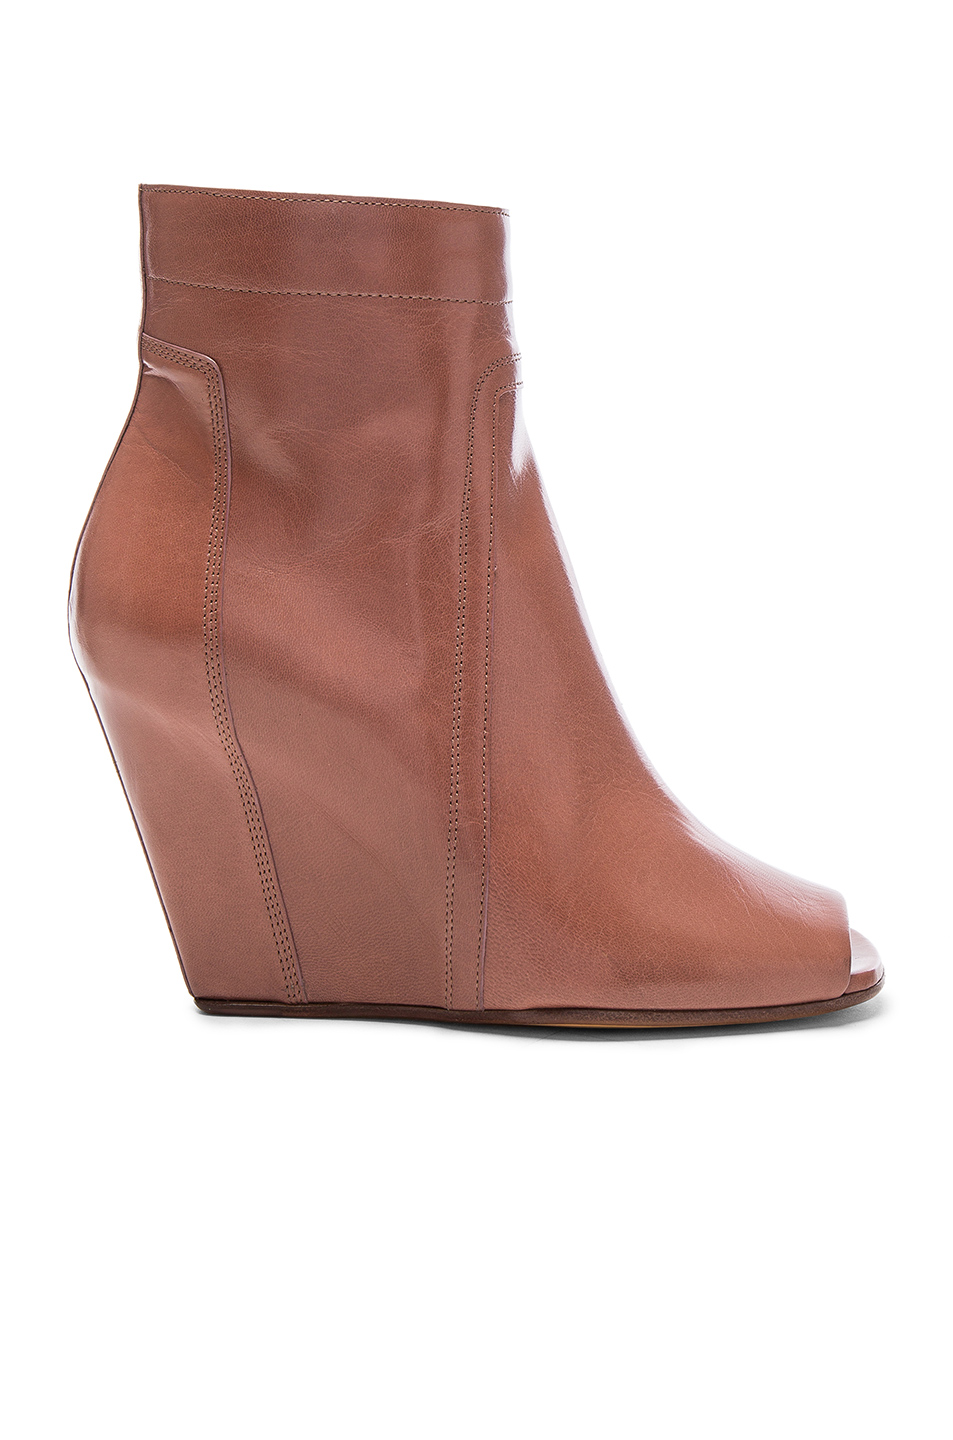 Rick Owens Open Toe Leather Wedges in Brown